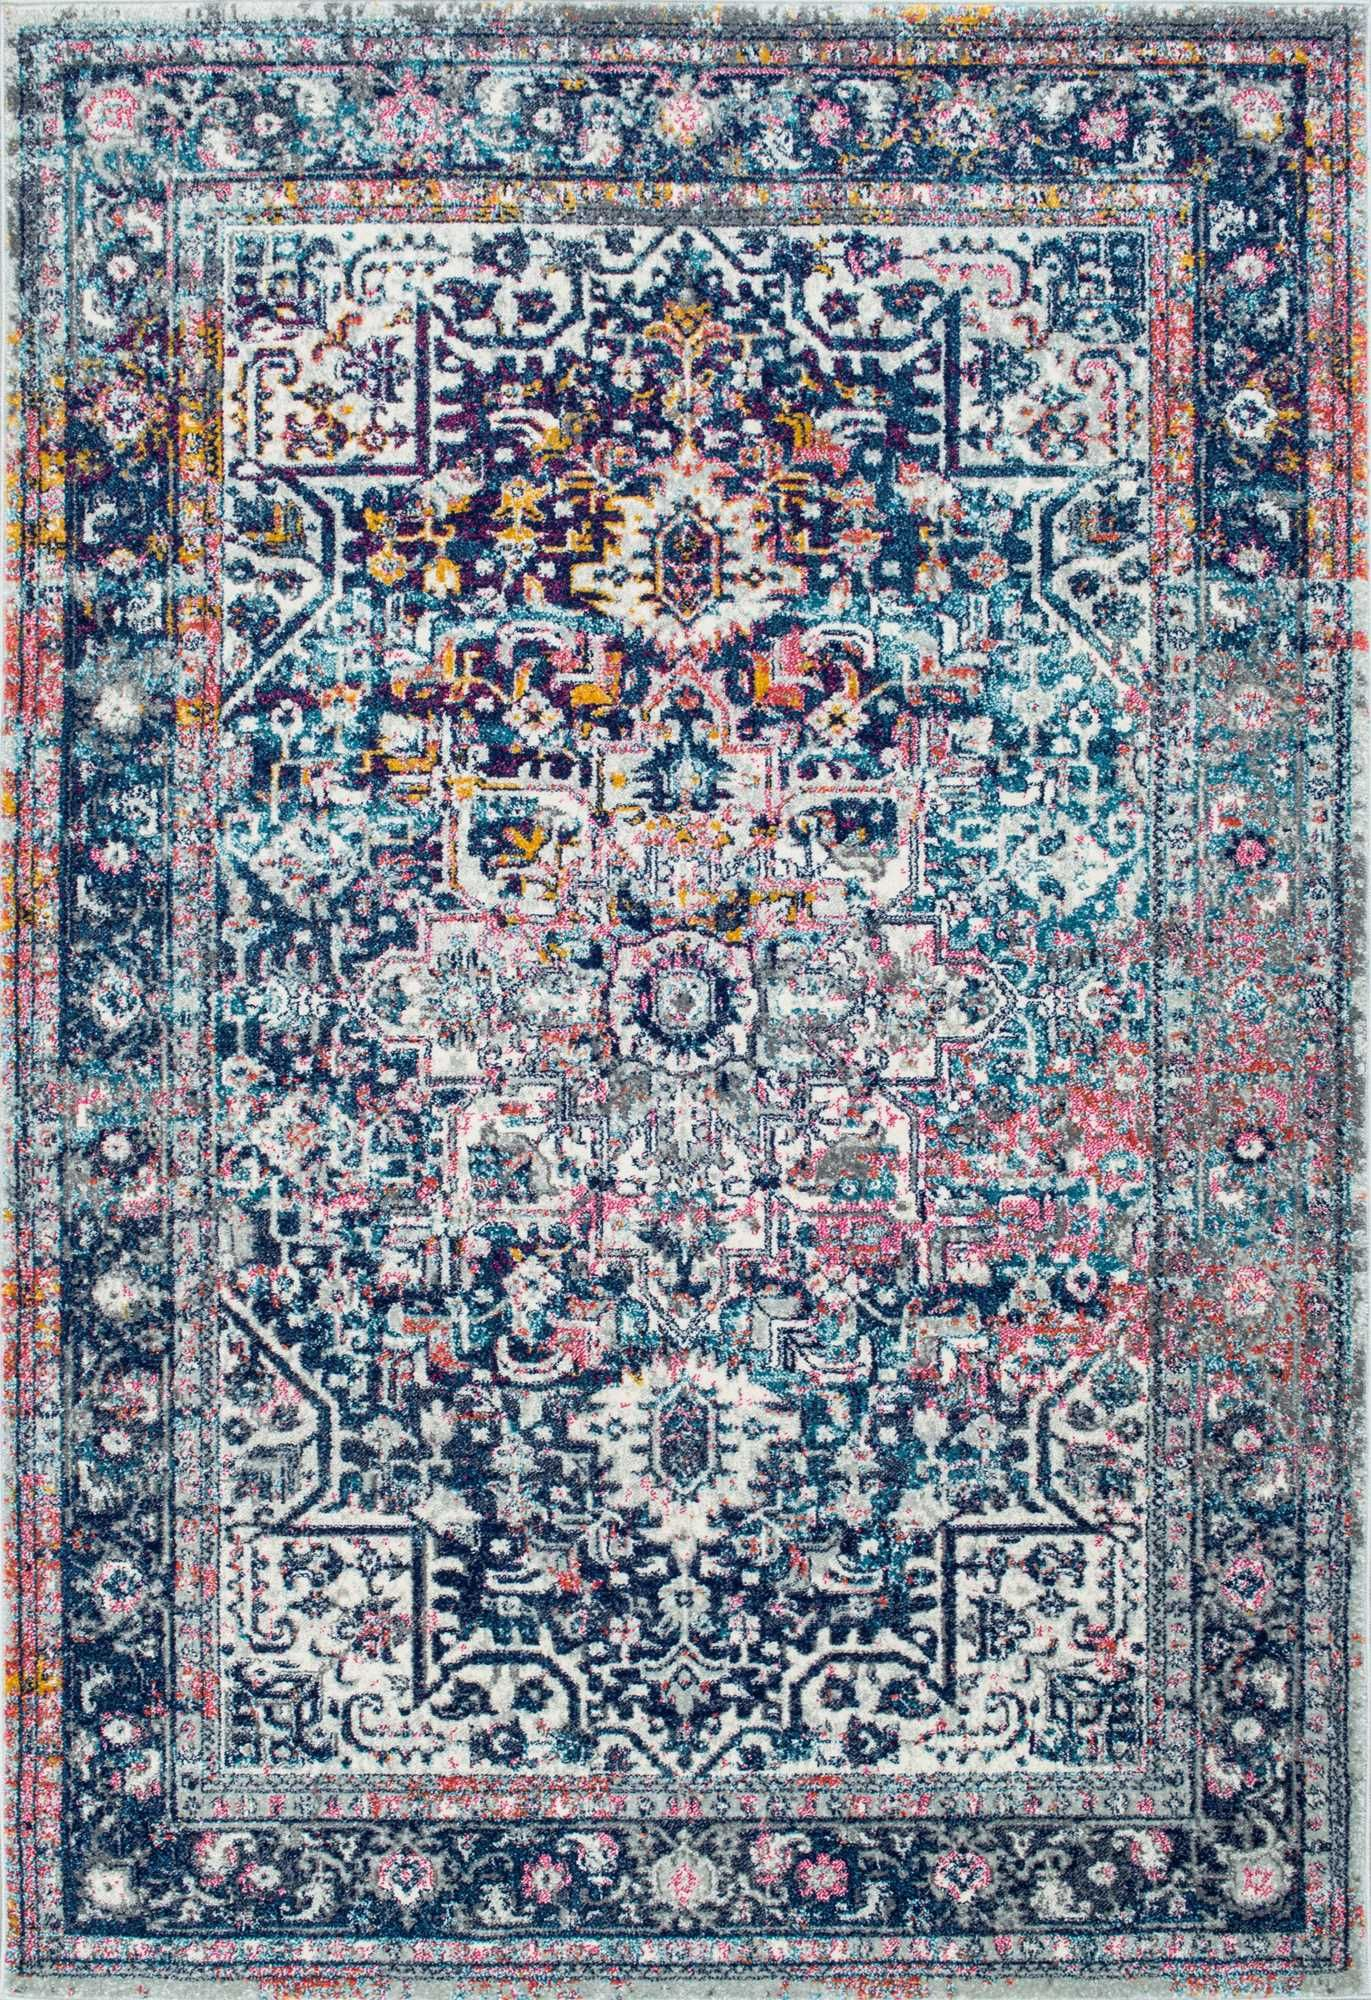 Bosphorus Bd38 Faded Star Petal Emblem Rug Home